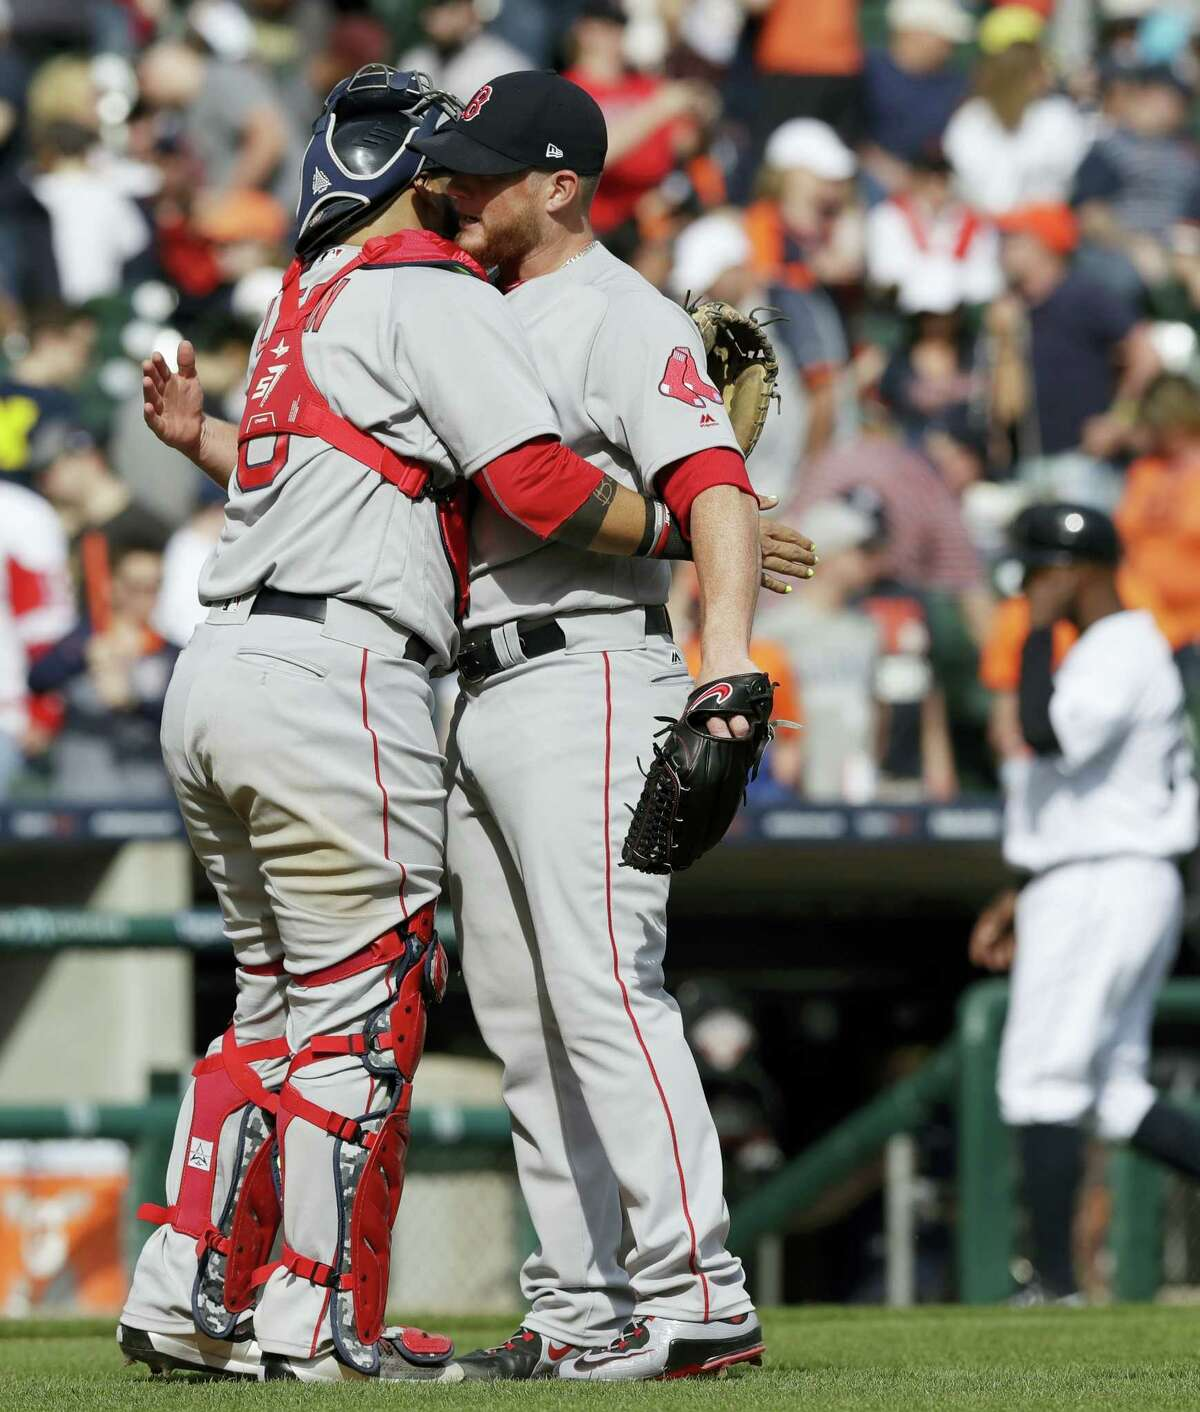 Boston Red Sox relief pitcher Craig Kimbrel is hugged by catcher Sandy Leon after the team's 7-5 win over the Detroit Tigers in a baseball game on April 9, 2017 in Detroit.